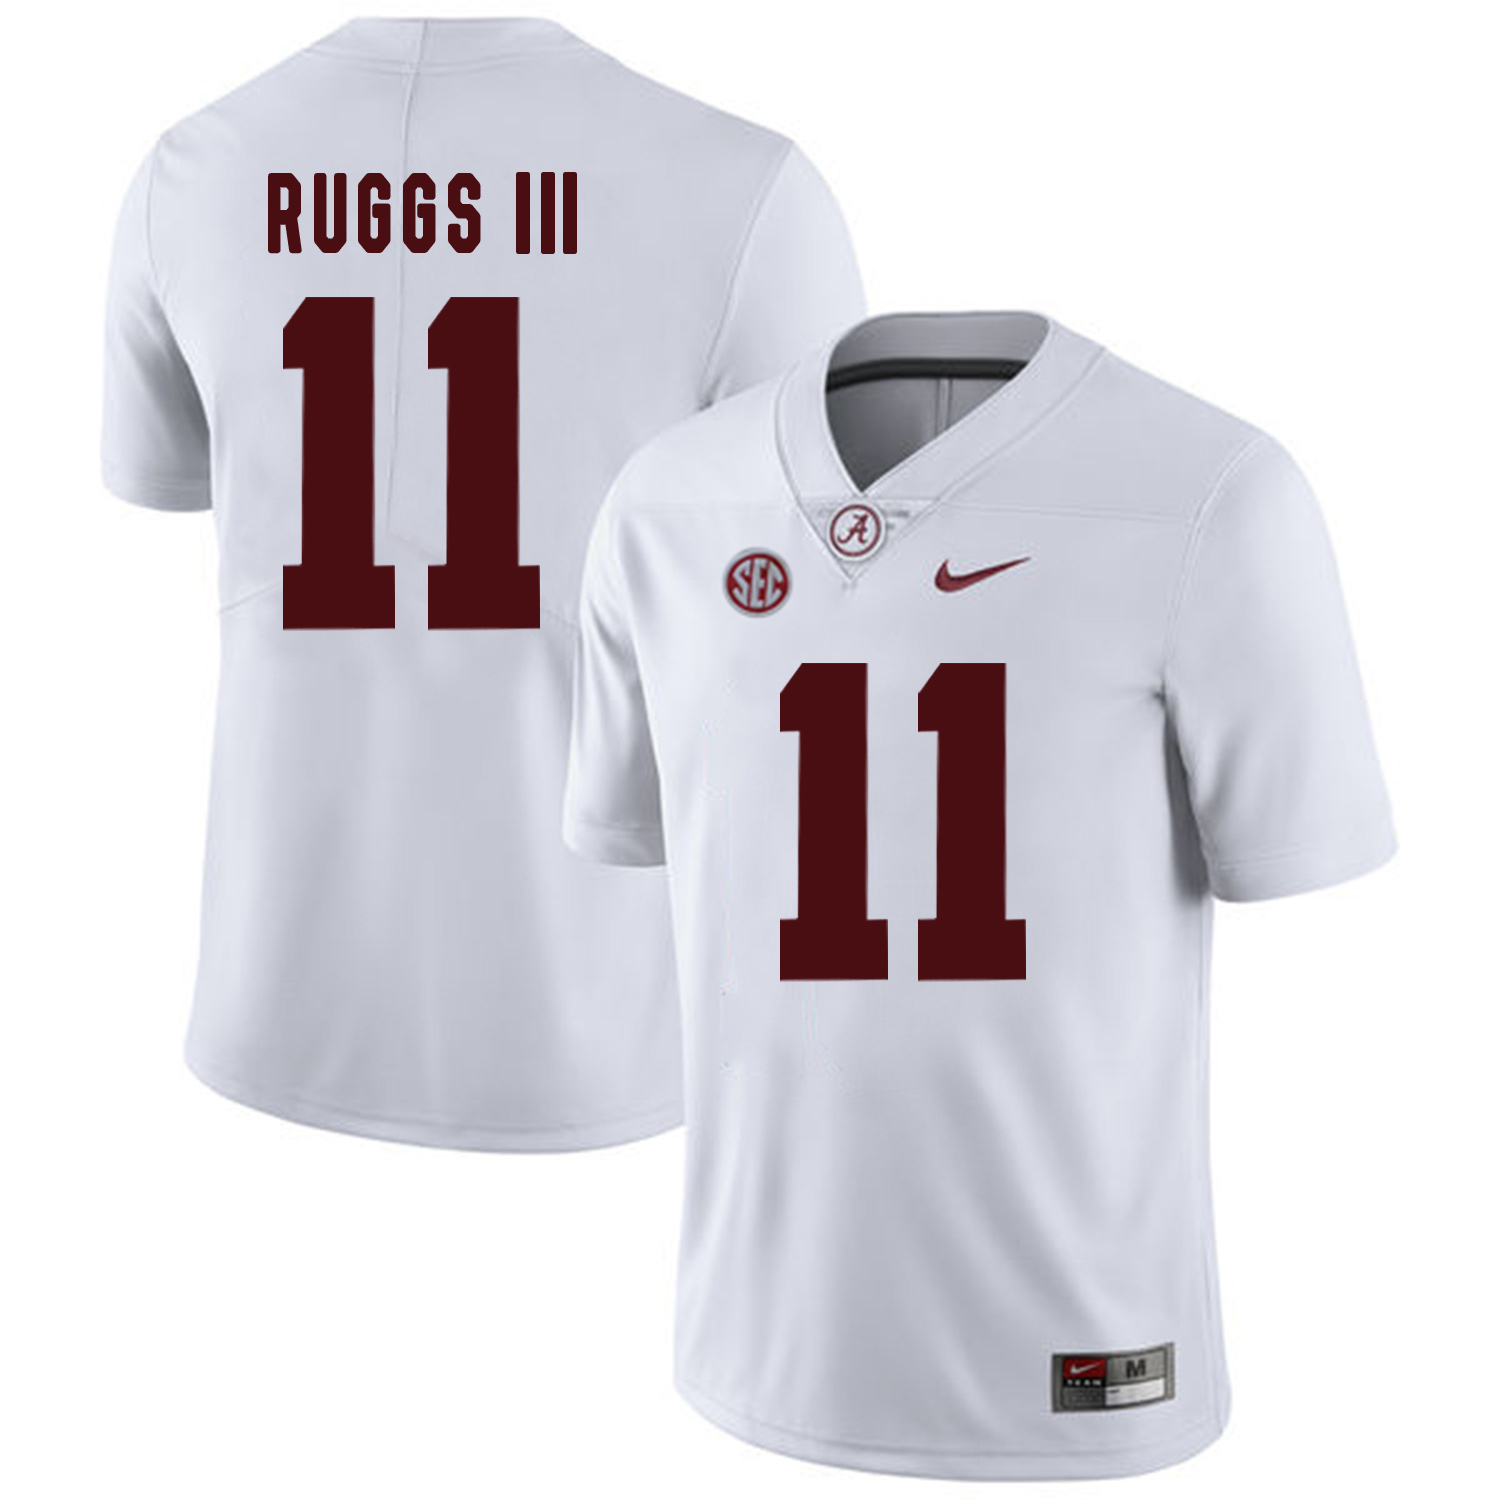 Alabama Crimson Tide 11 Henry Ruggs III White College Football Jersey